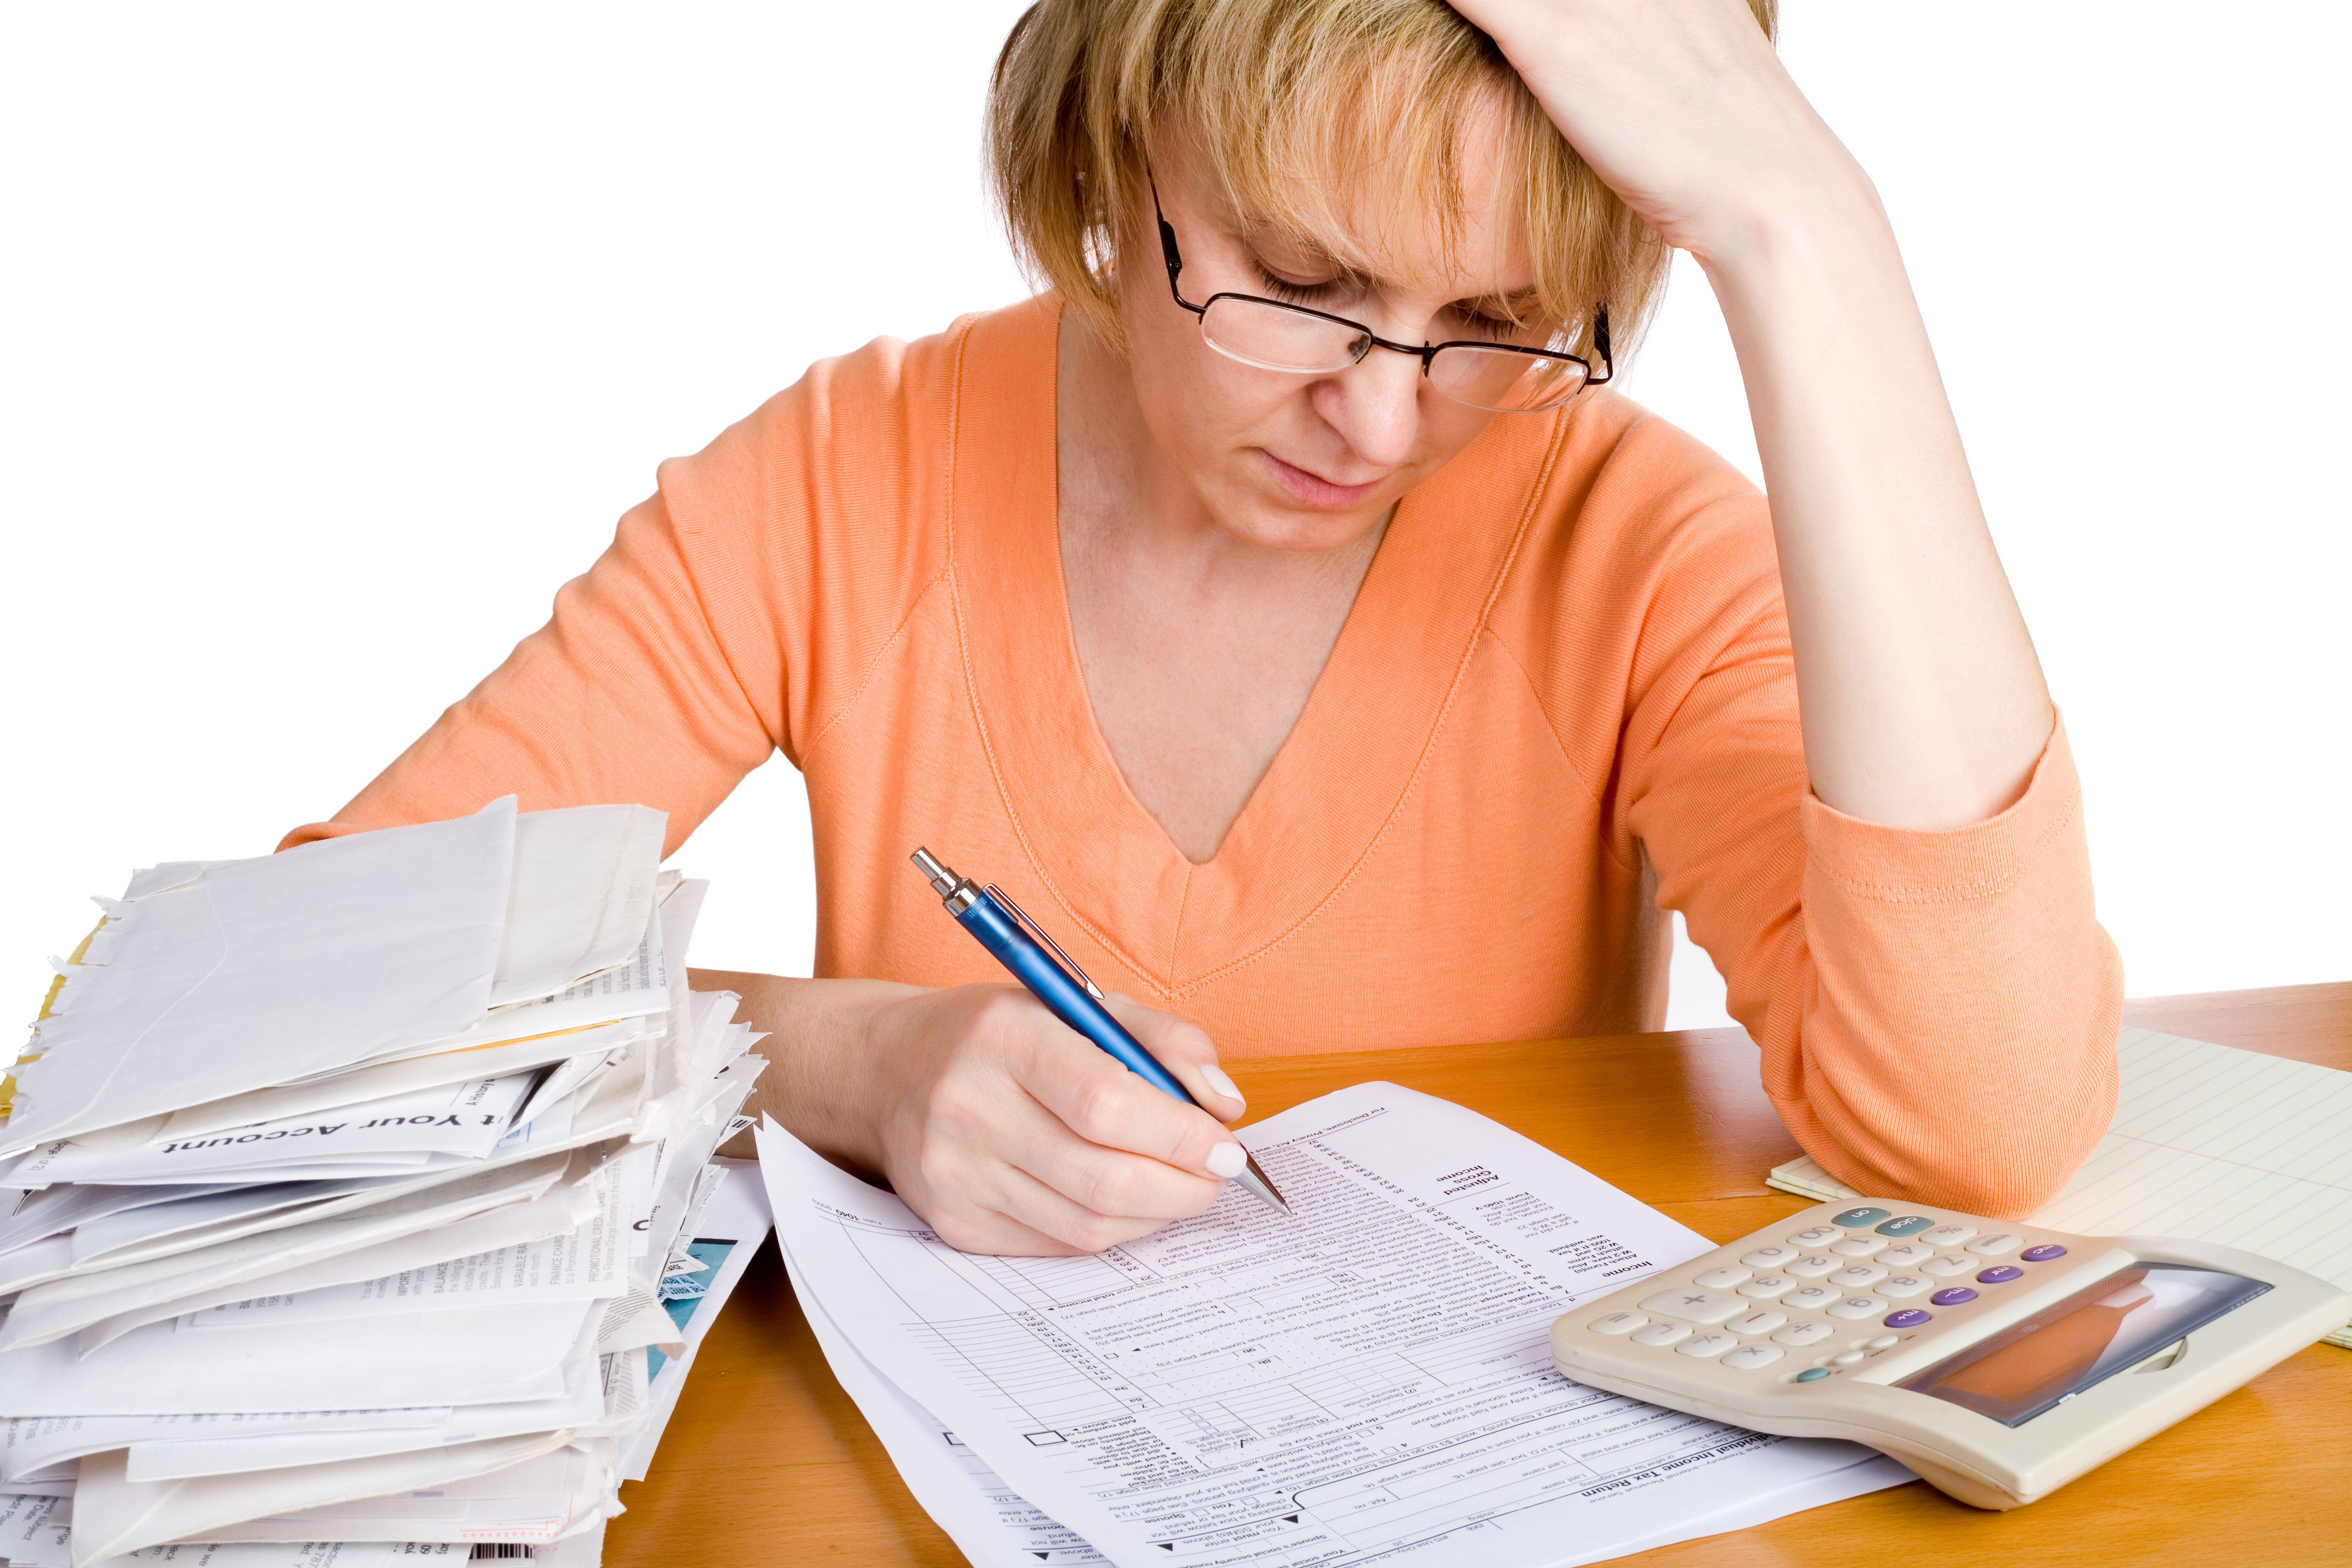 Woman doing her taxes at desk with calculator.